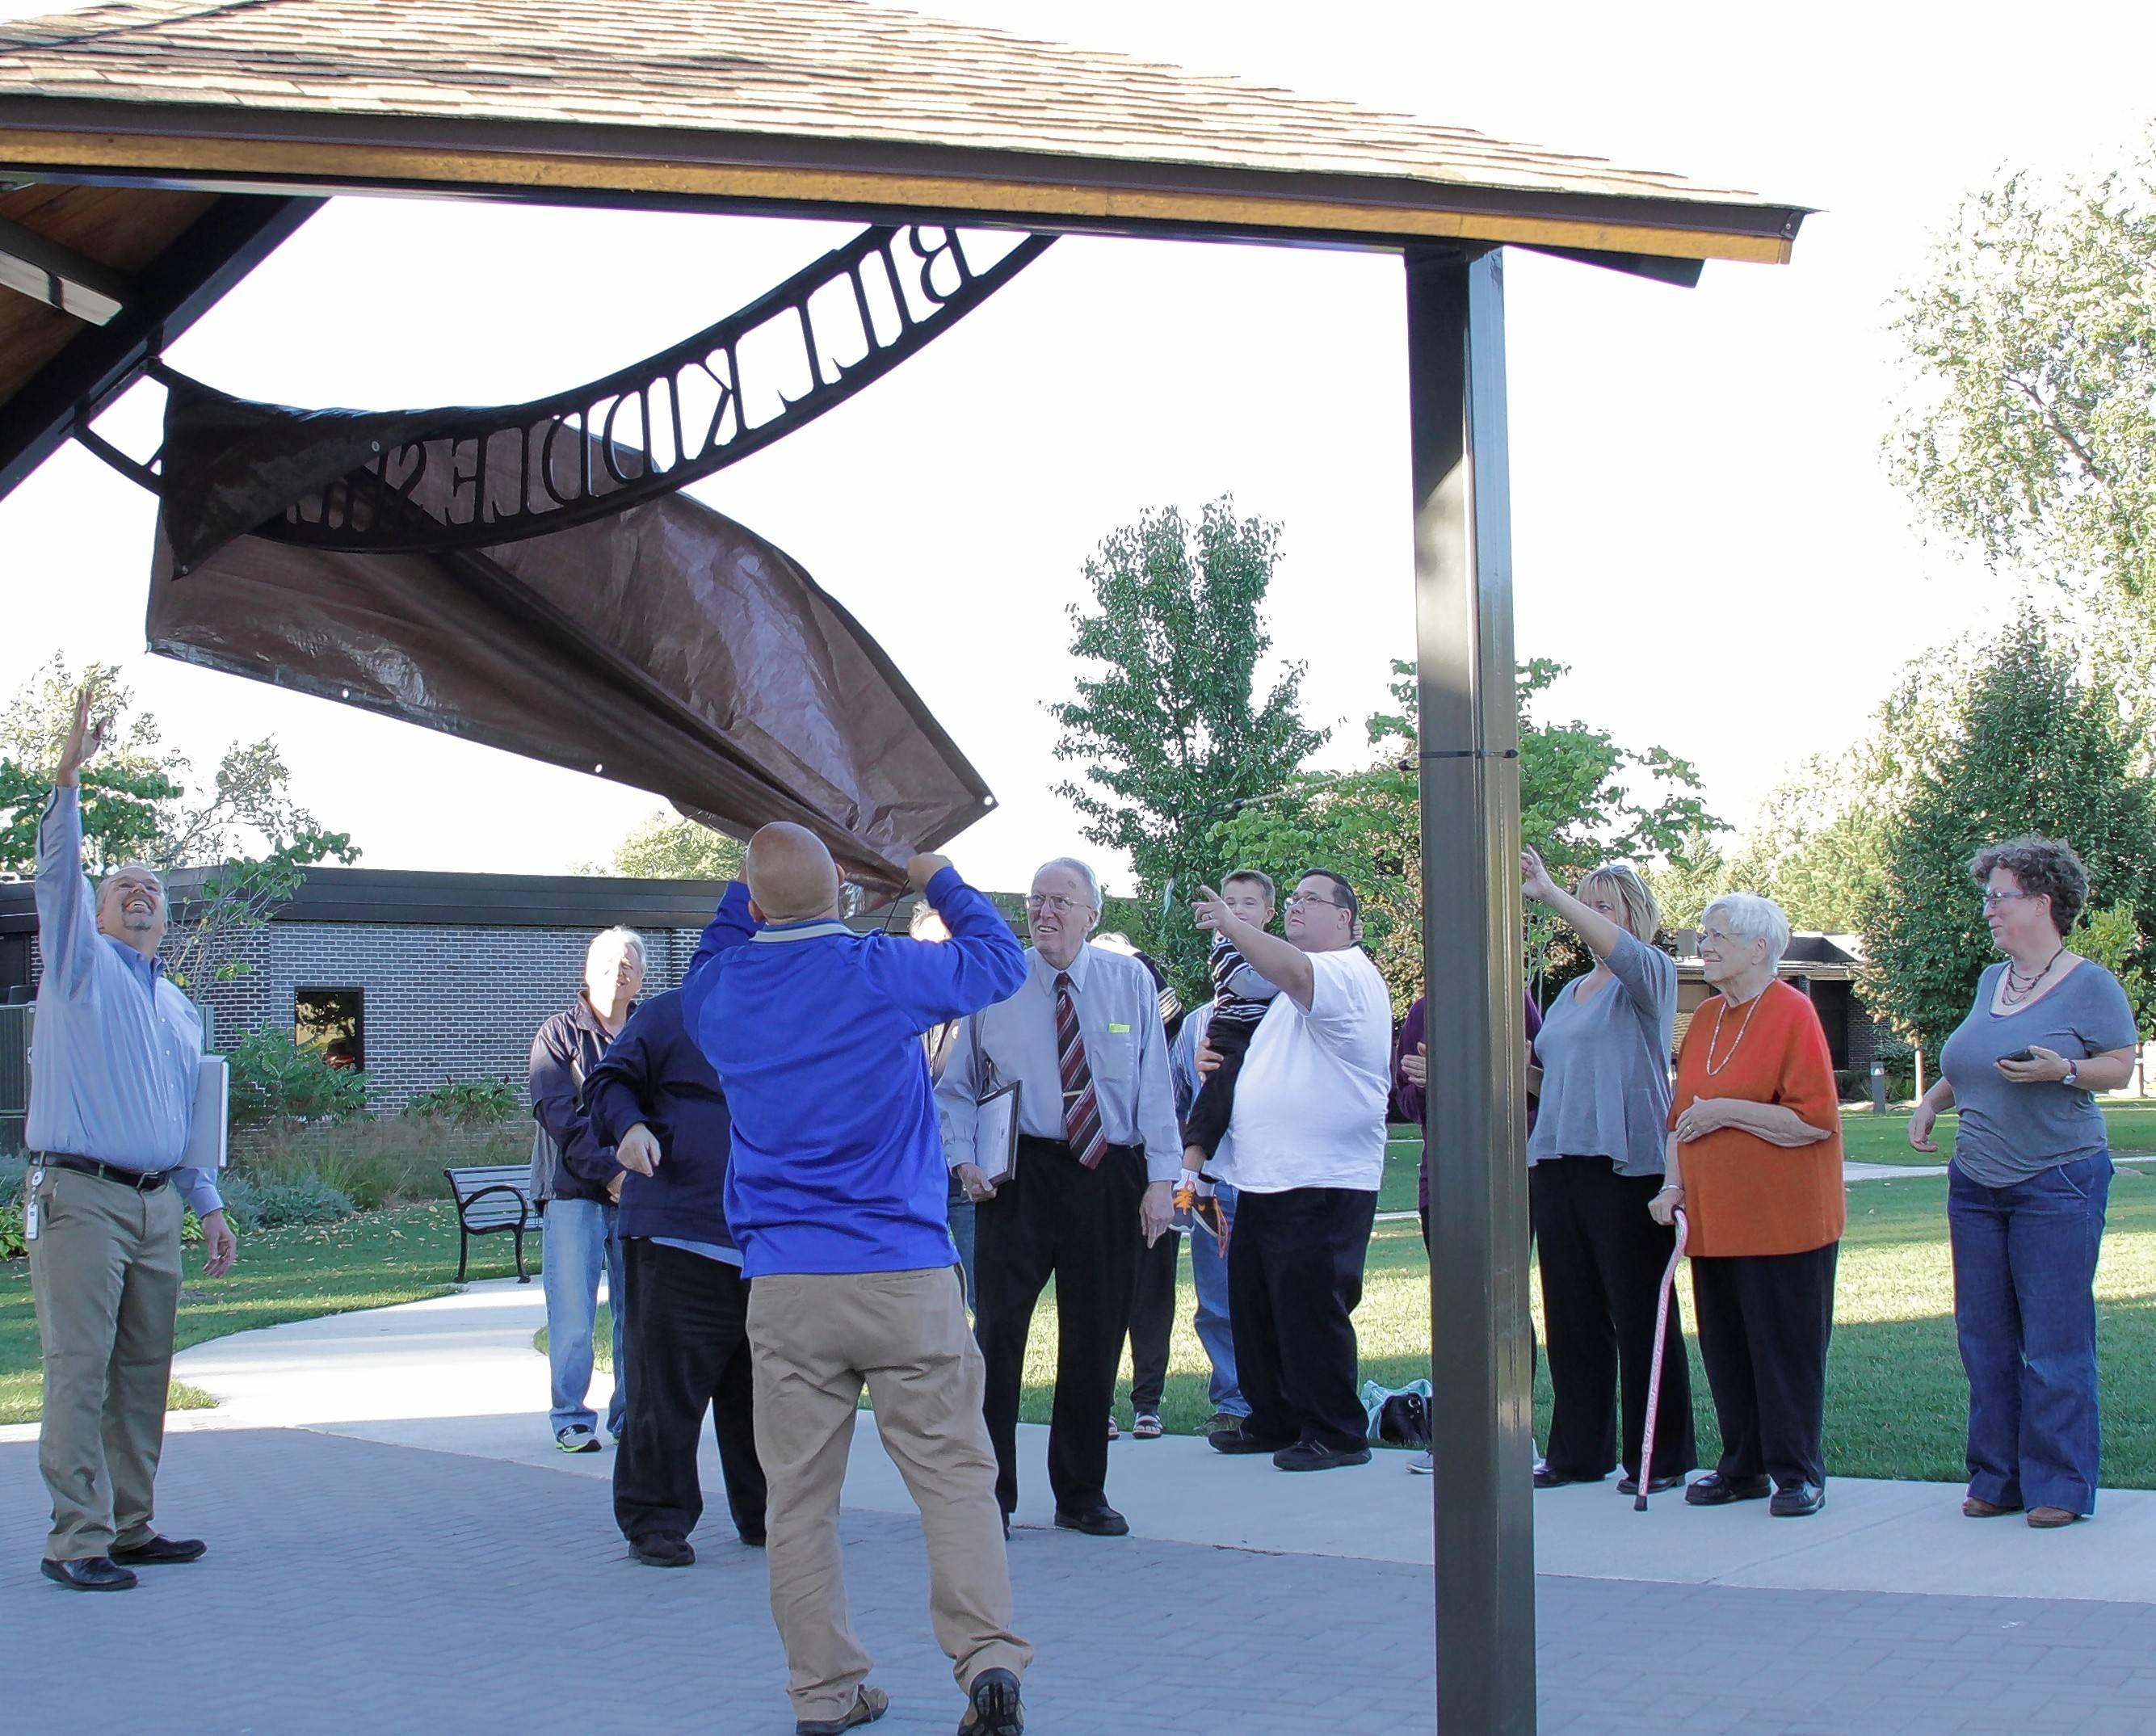 Buffalo Grove Park District officials unveil the sign naming the new shelter in front of the Alcott Center in honor of longtime board member Bill Kiddle, 84.